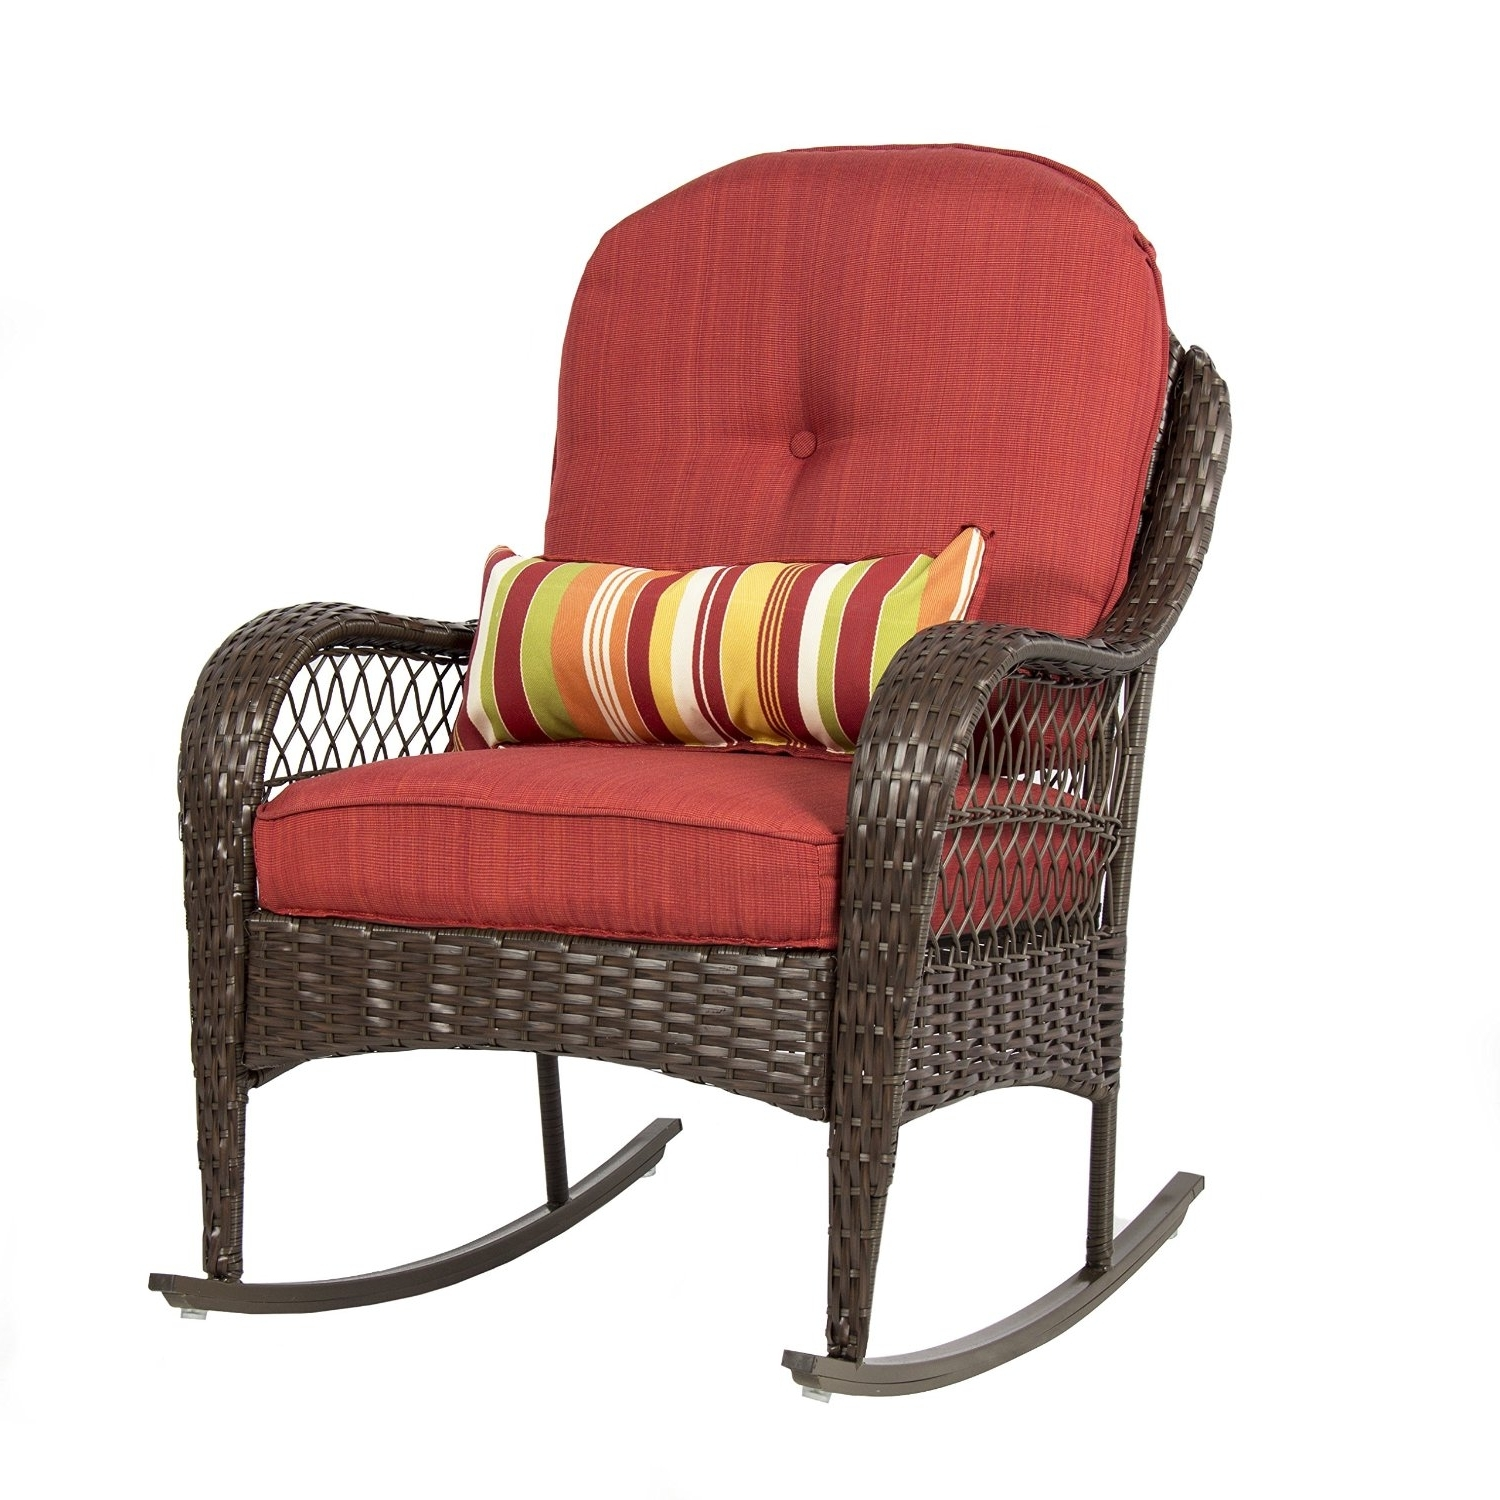 Best Choice Products Wicker Rocking Chair With Well Liked Outdoor Wicker Rocking Chairs With Cushions (View 3 of 15)